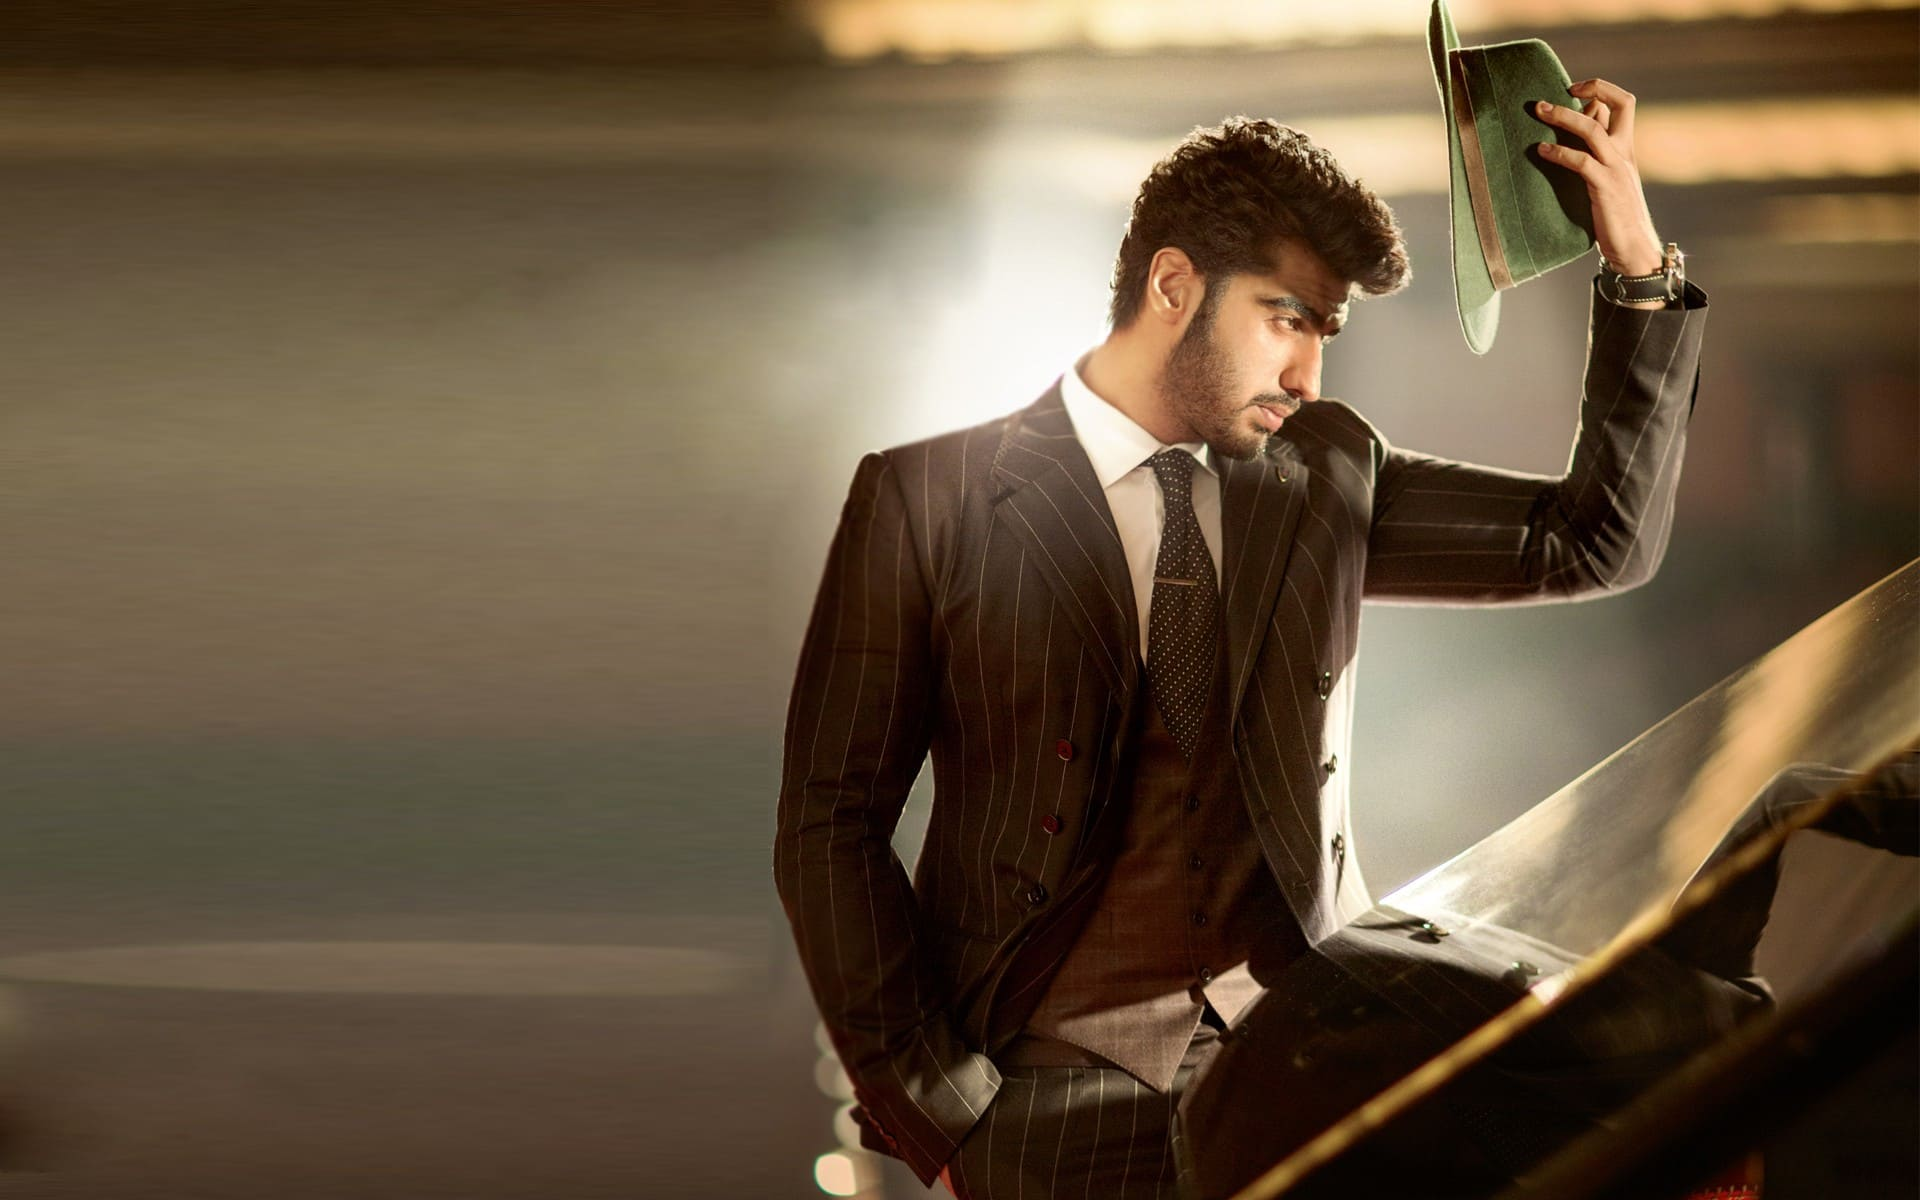 Could Arjun Kapoor And Kriti Sanon Share Screen Space Together In This Next Film?